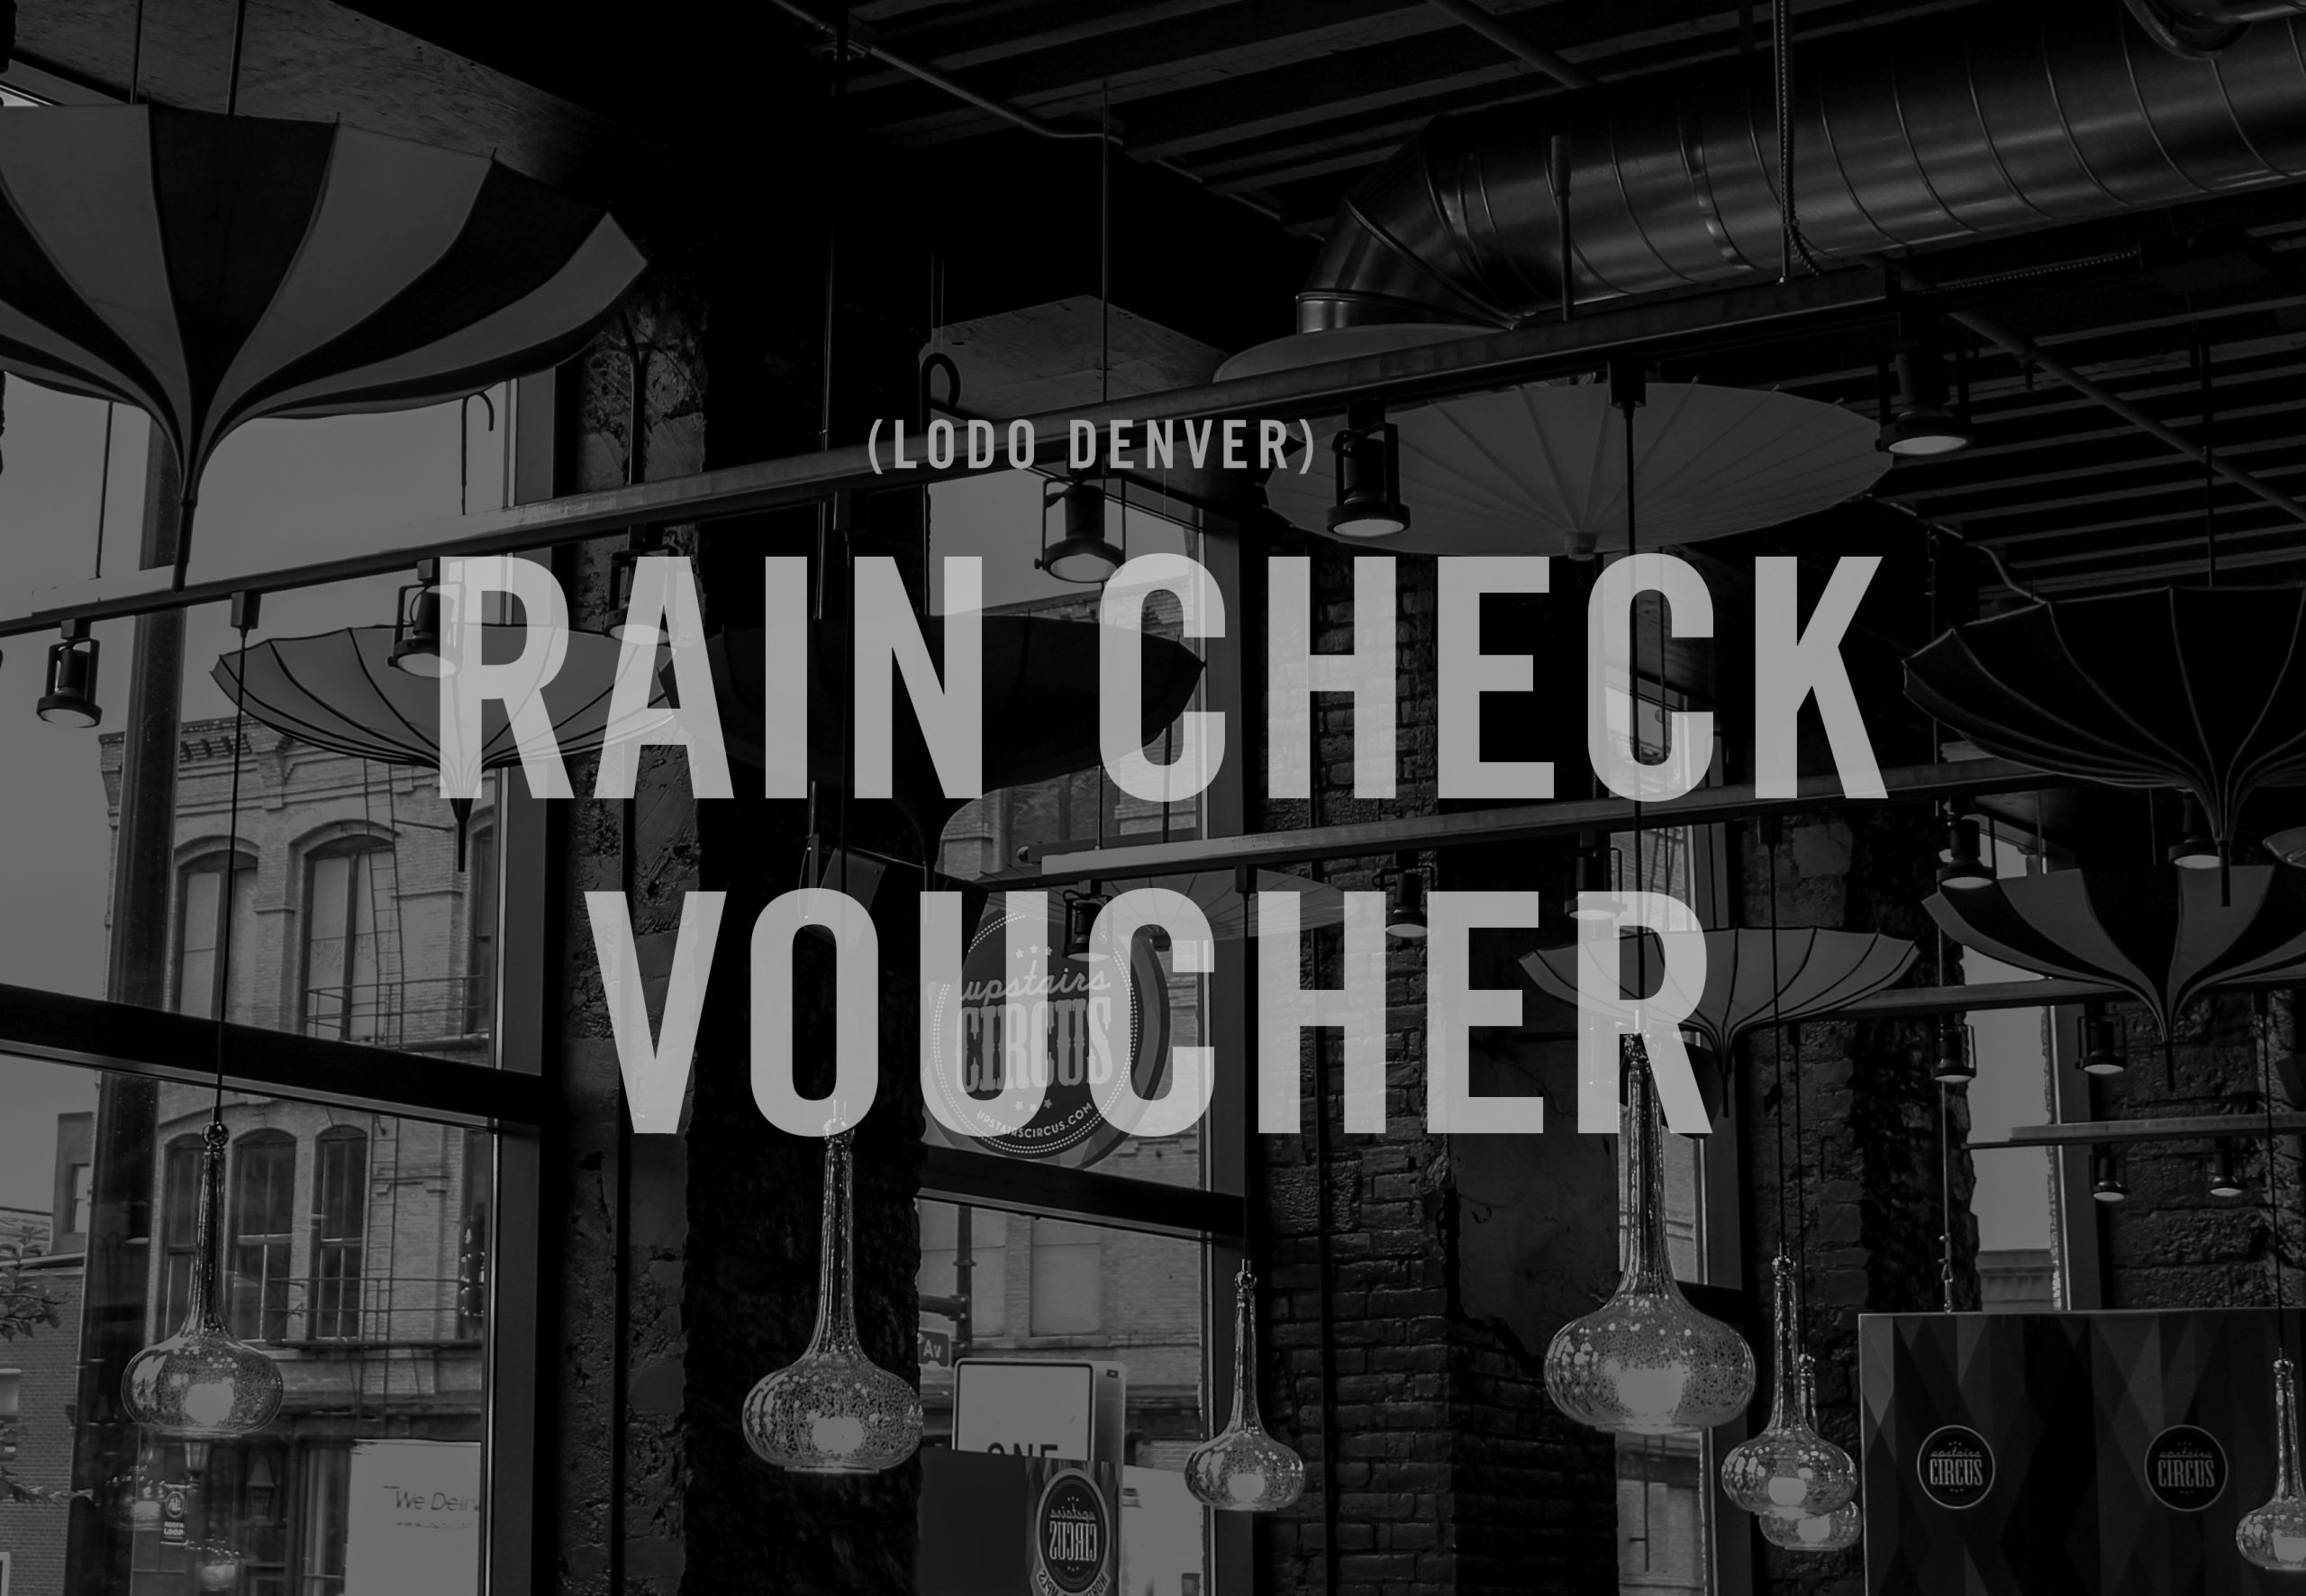 Upstairs Circus Rain Check Voucher LODO